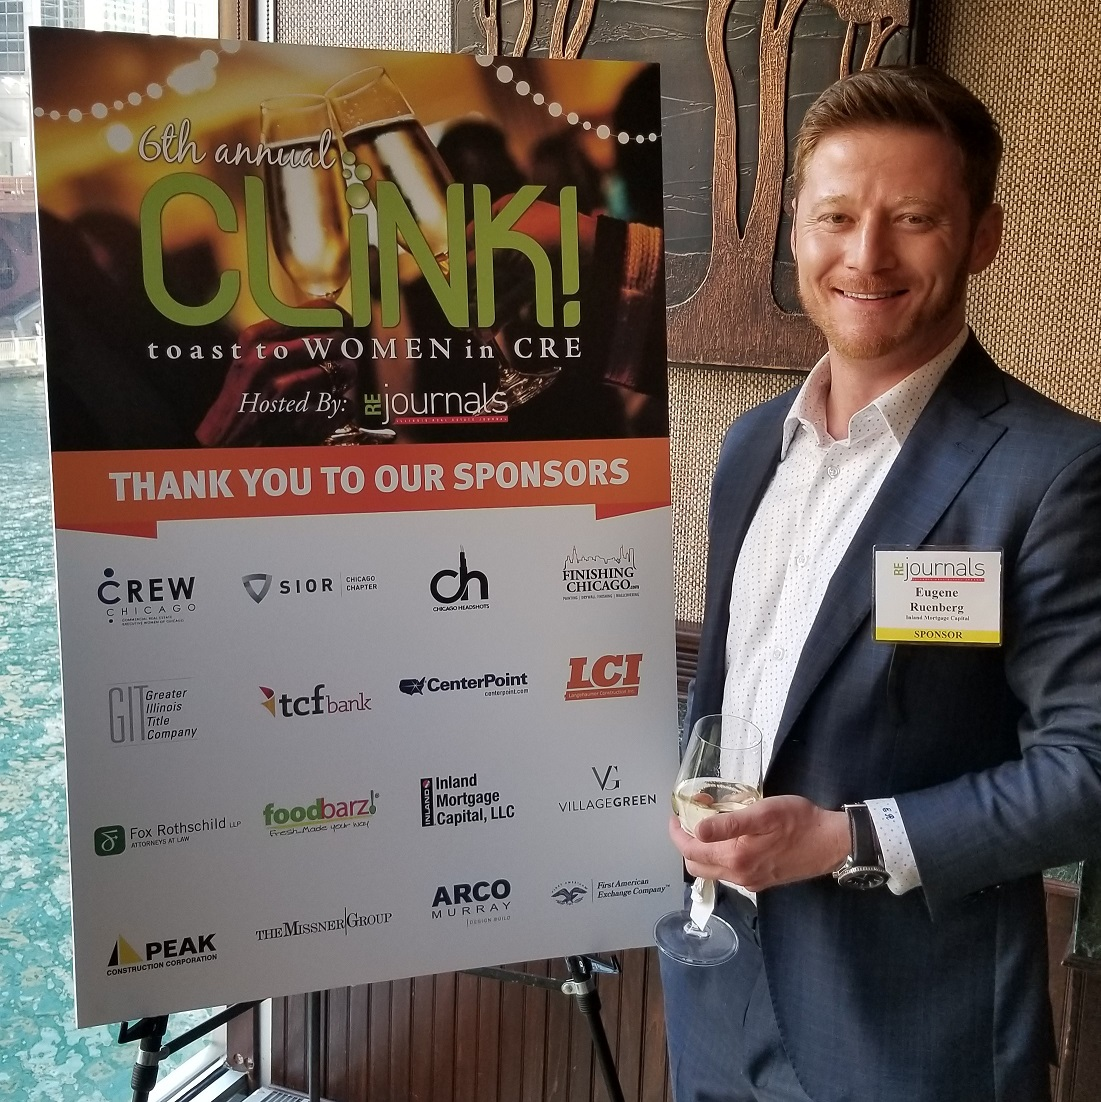 In celebration of the women in real estate, Eugene Rutenberg attended the 6th Annual CLINK Toast to Women networking event, held at Smith & Wollensky in downtown Chicago.